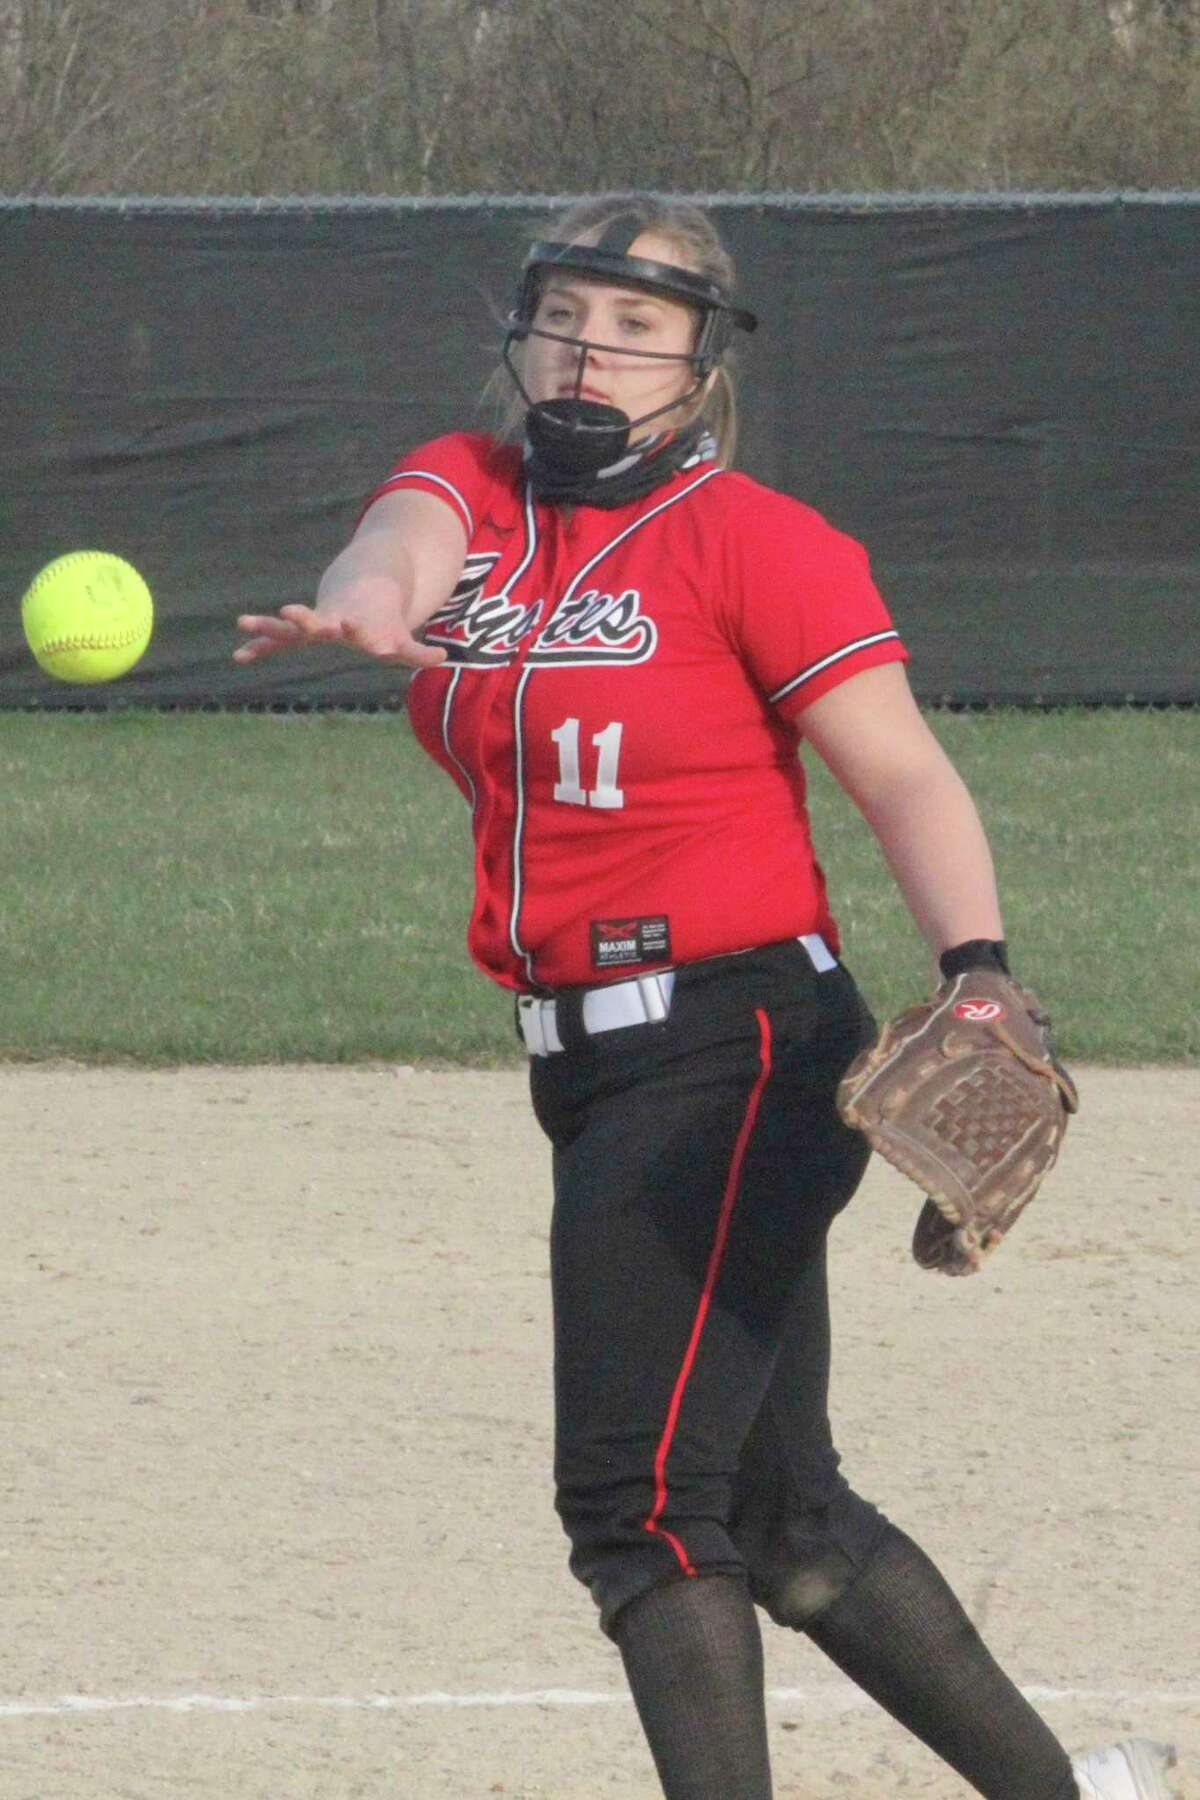 Reed City's Rylie Schafer delivers a pitch earlier this season. (Herald Review file photo)